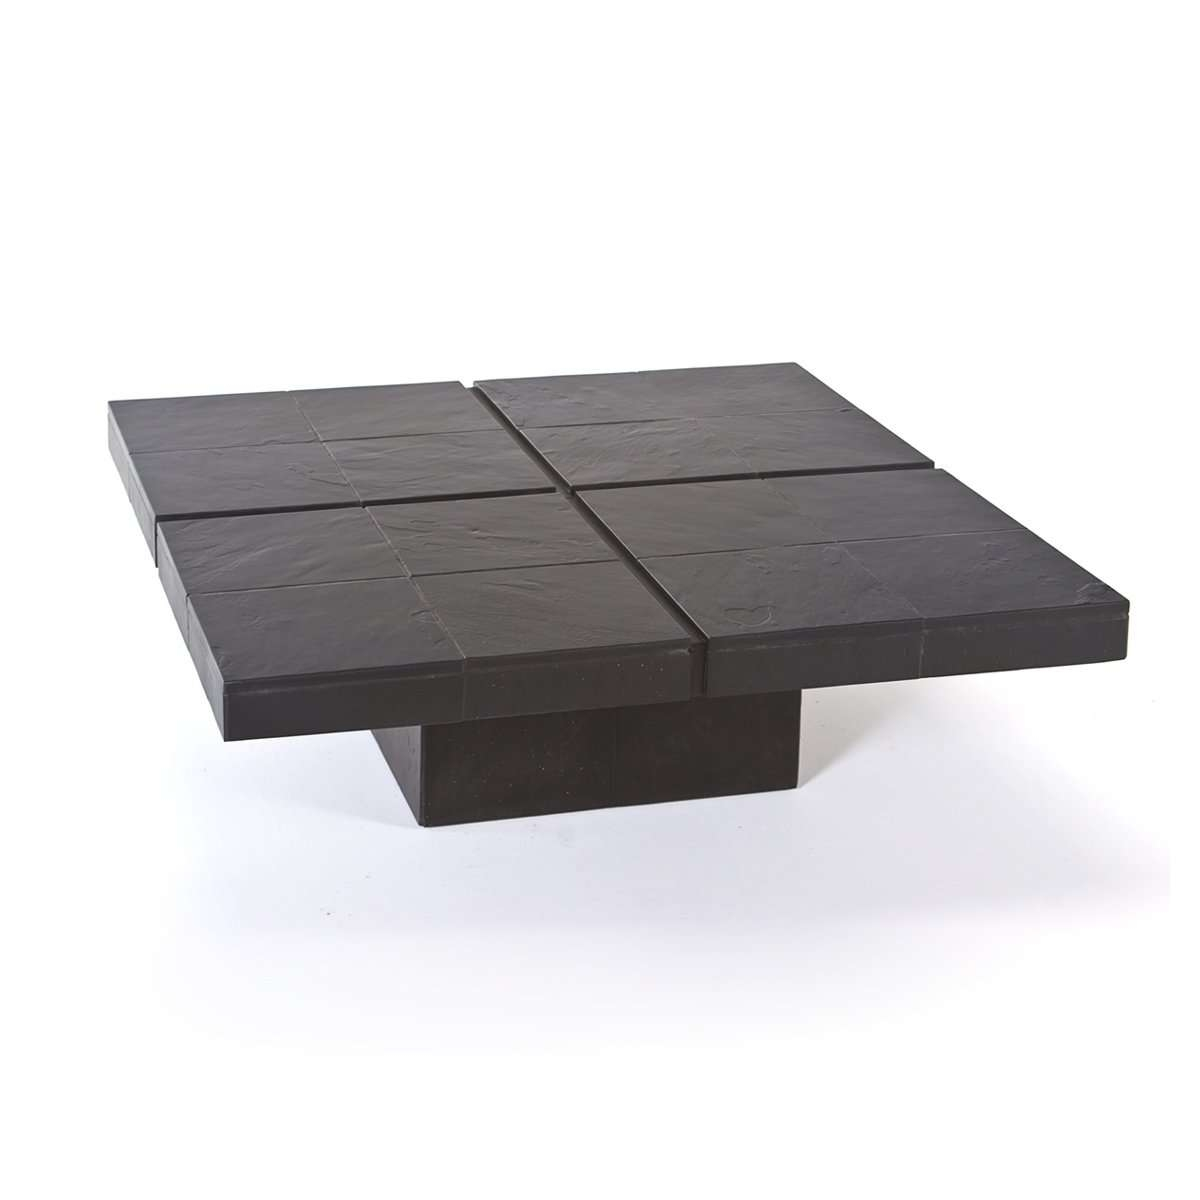 Latest Low Japanese Style Coffee Tables Intended For Small Space Coffee Table And Dining Table Options – Japanese Style (View 3 of 20)